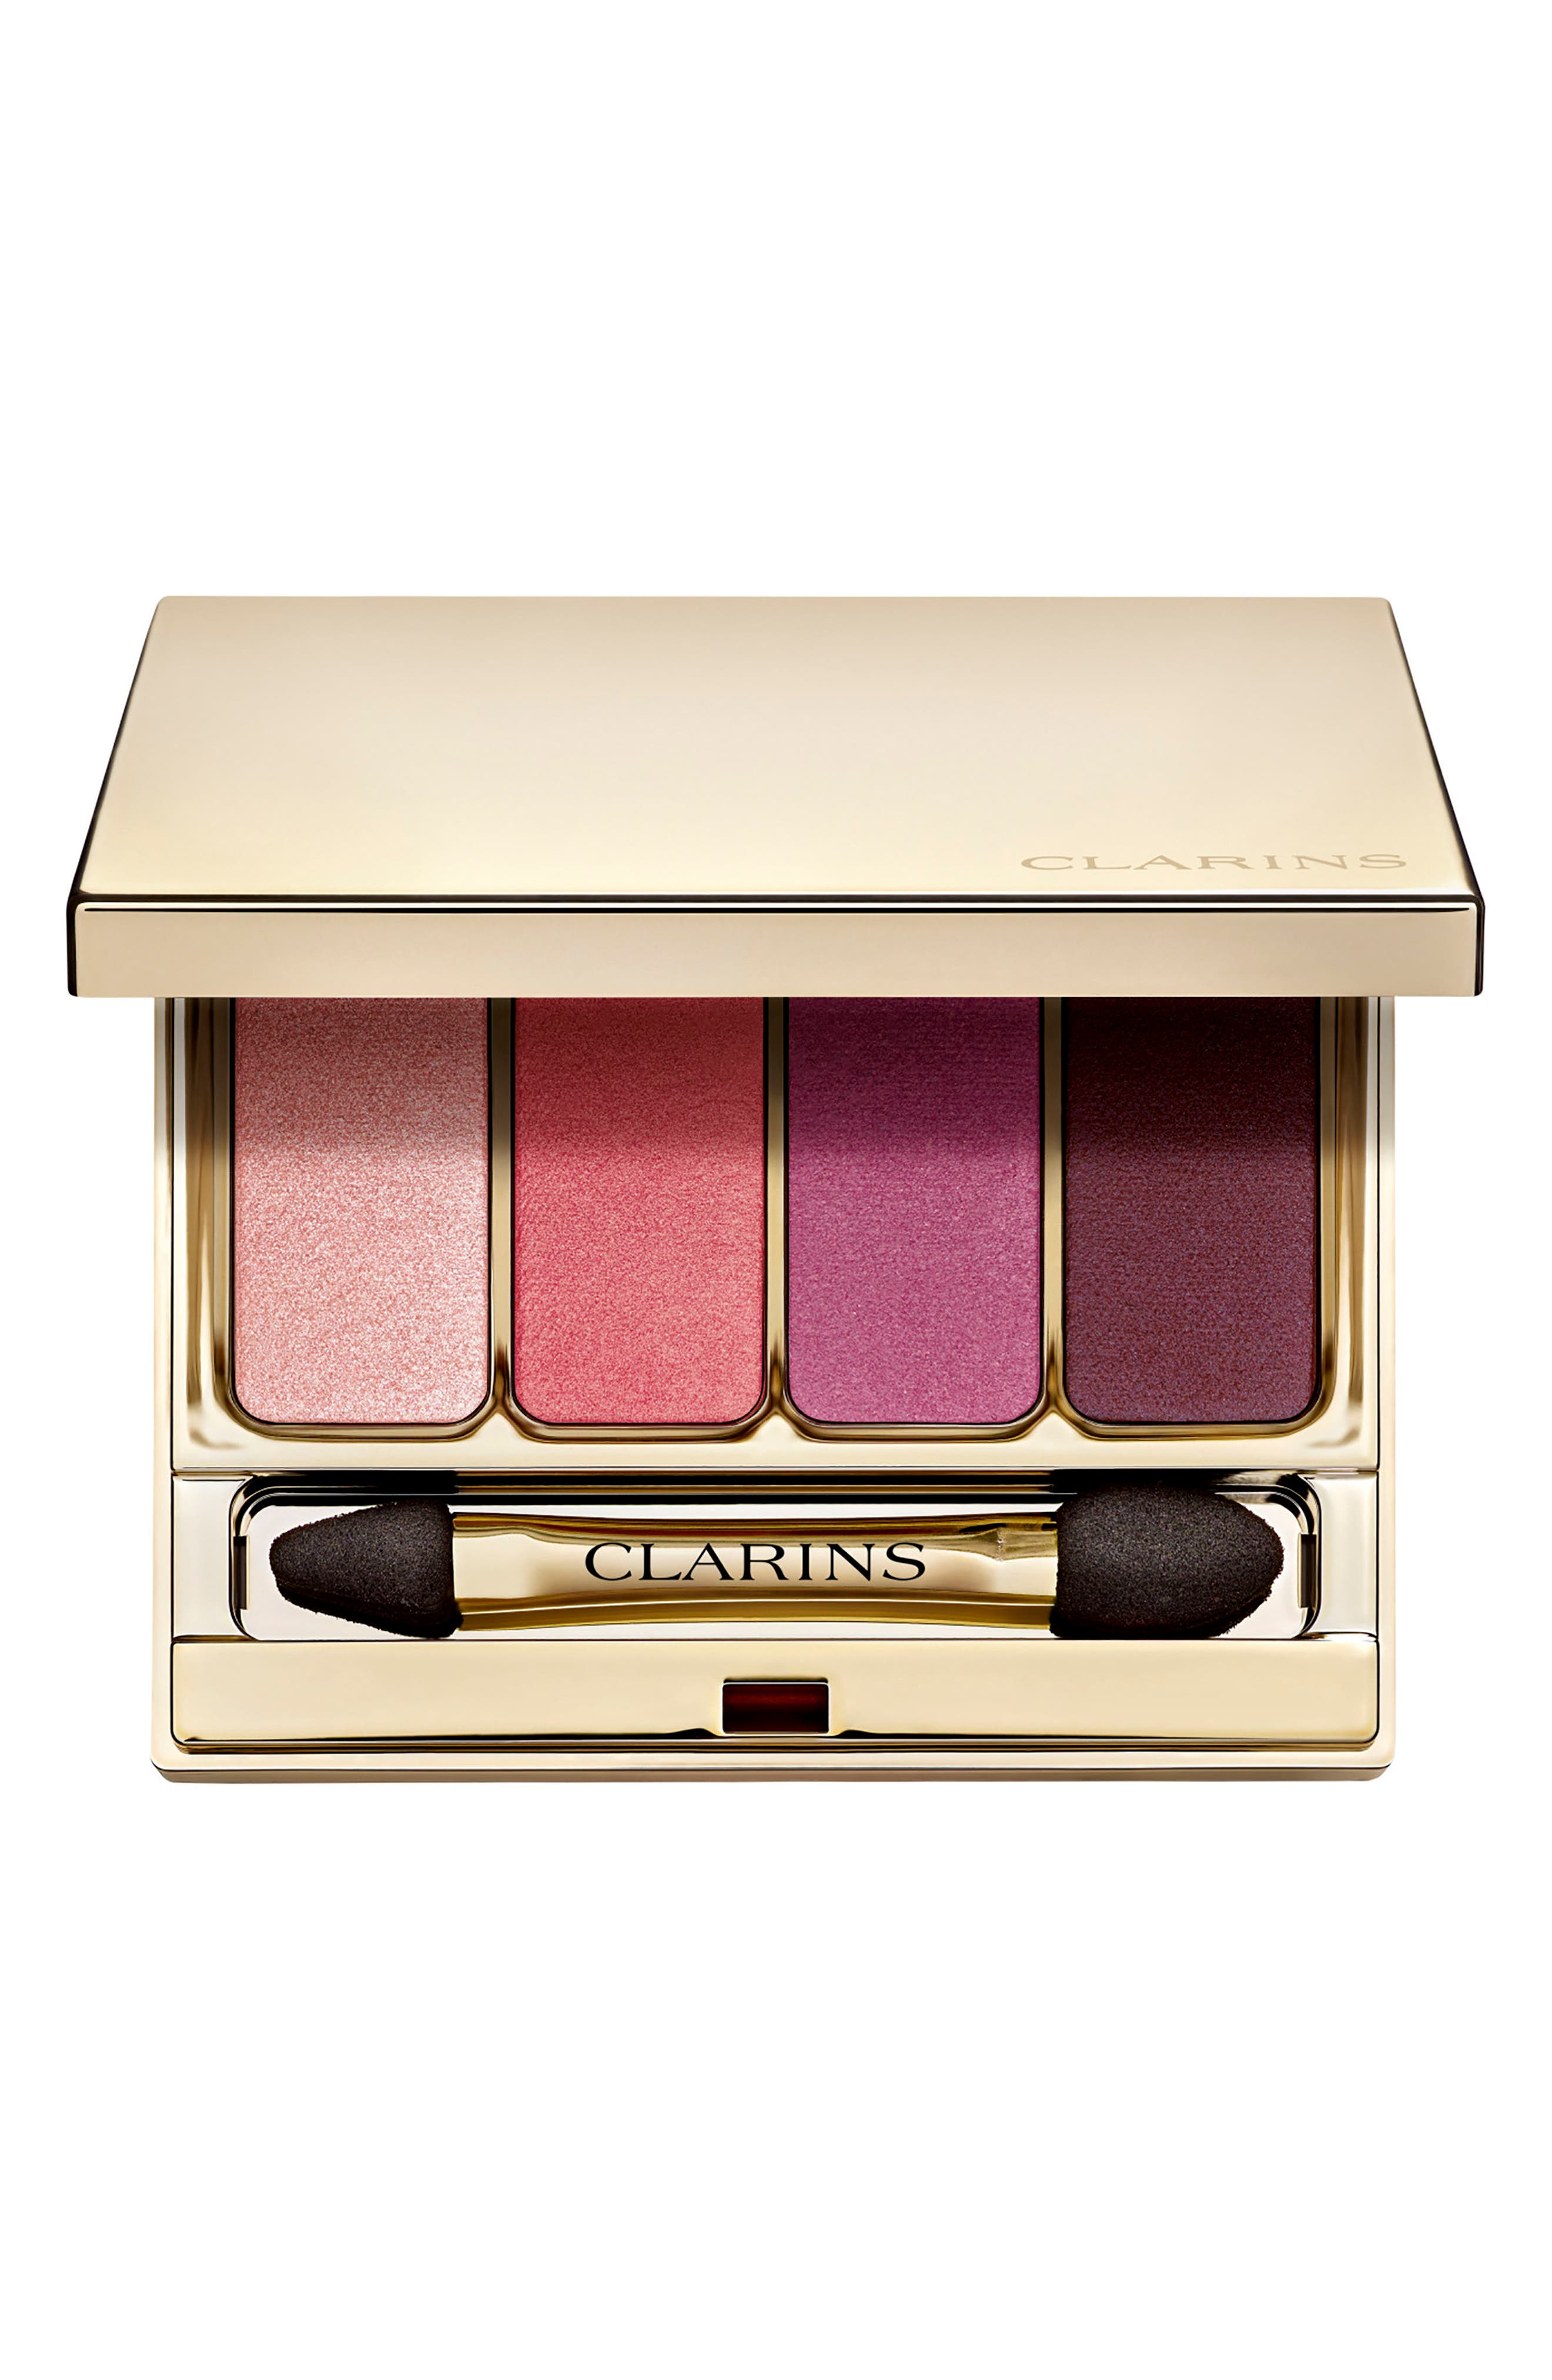 4-Color Eyeshadow Palette,                         Main,                         color, 07 Lovely Rose